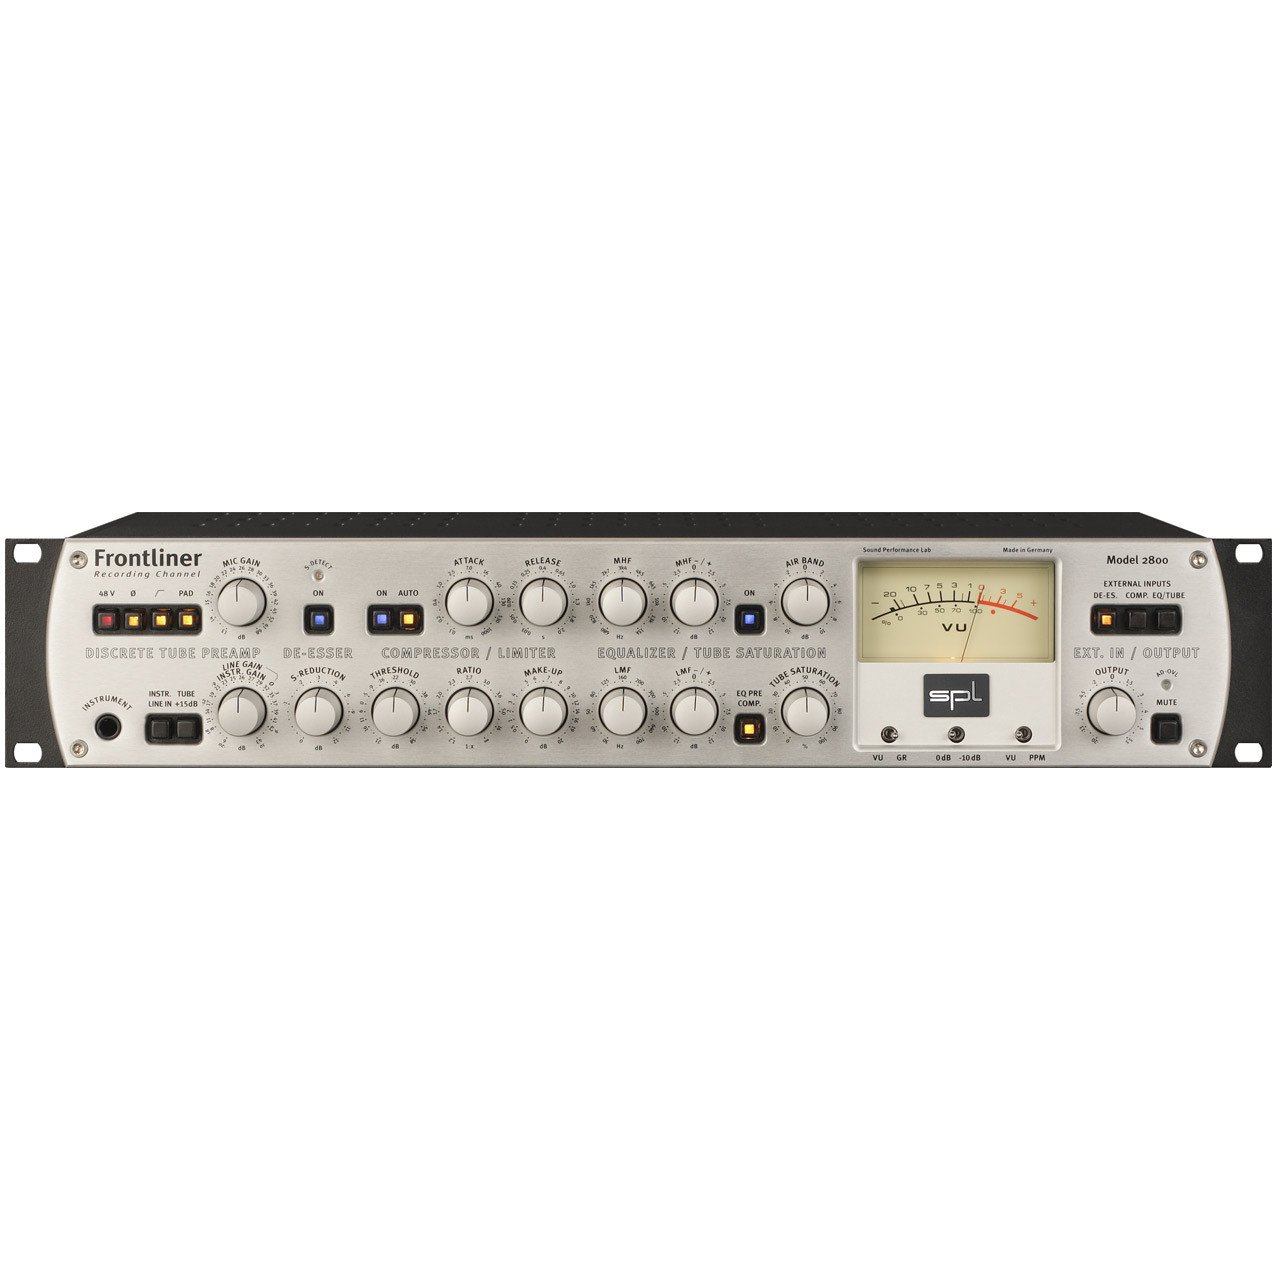 Preamps/Channel Strips - SPL Frontliner Recording Channel